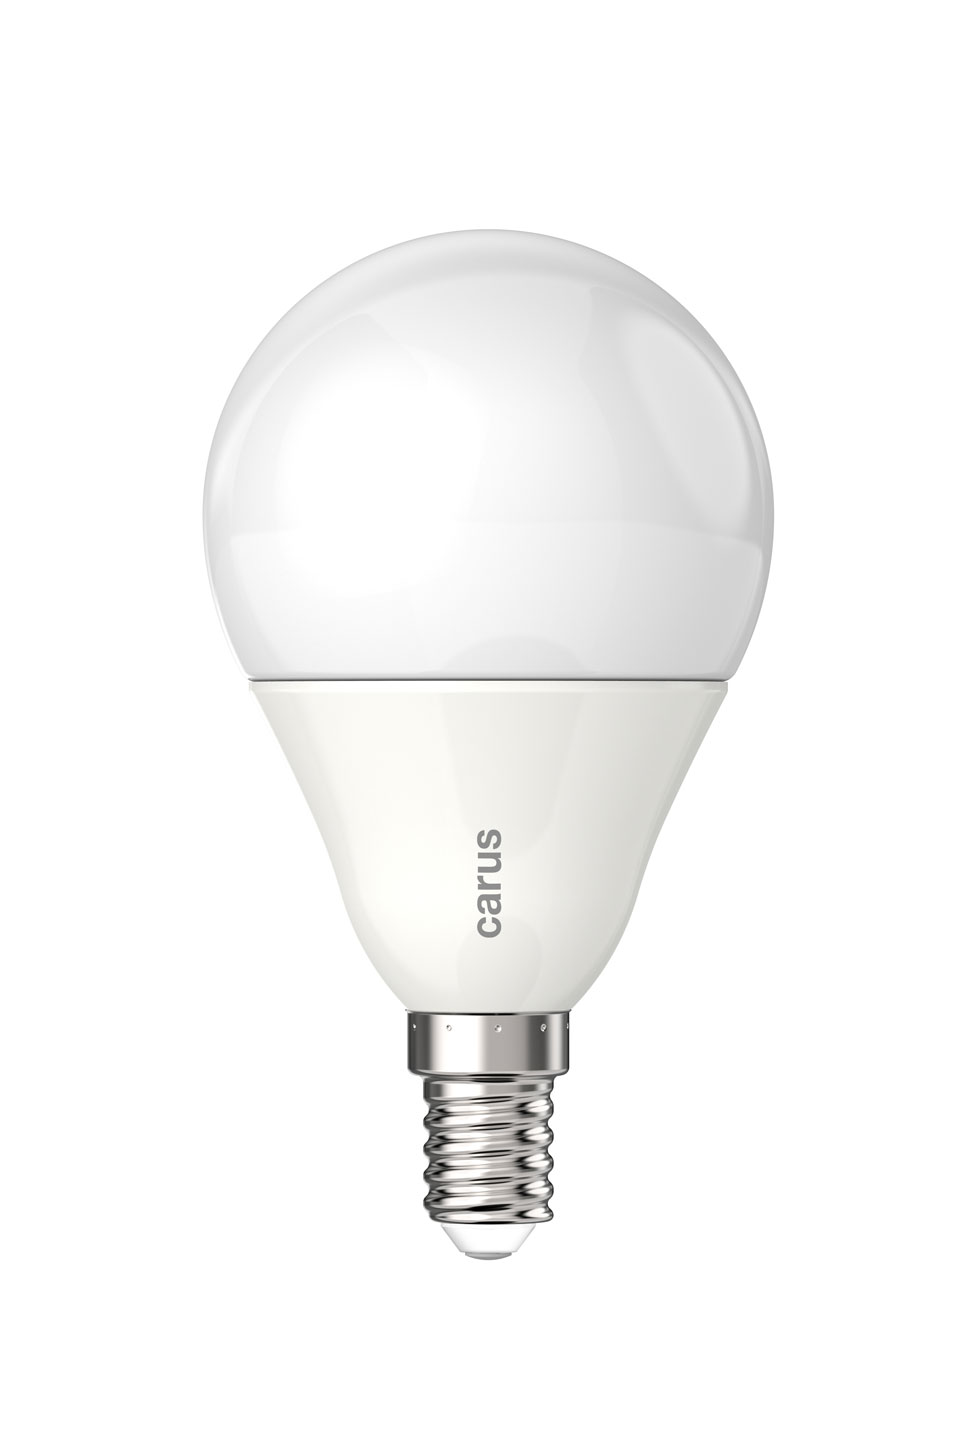 60 E14 Lumen Warm White Led Bulb 2700 K 400 Lumen